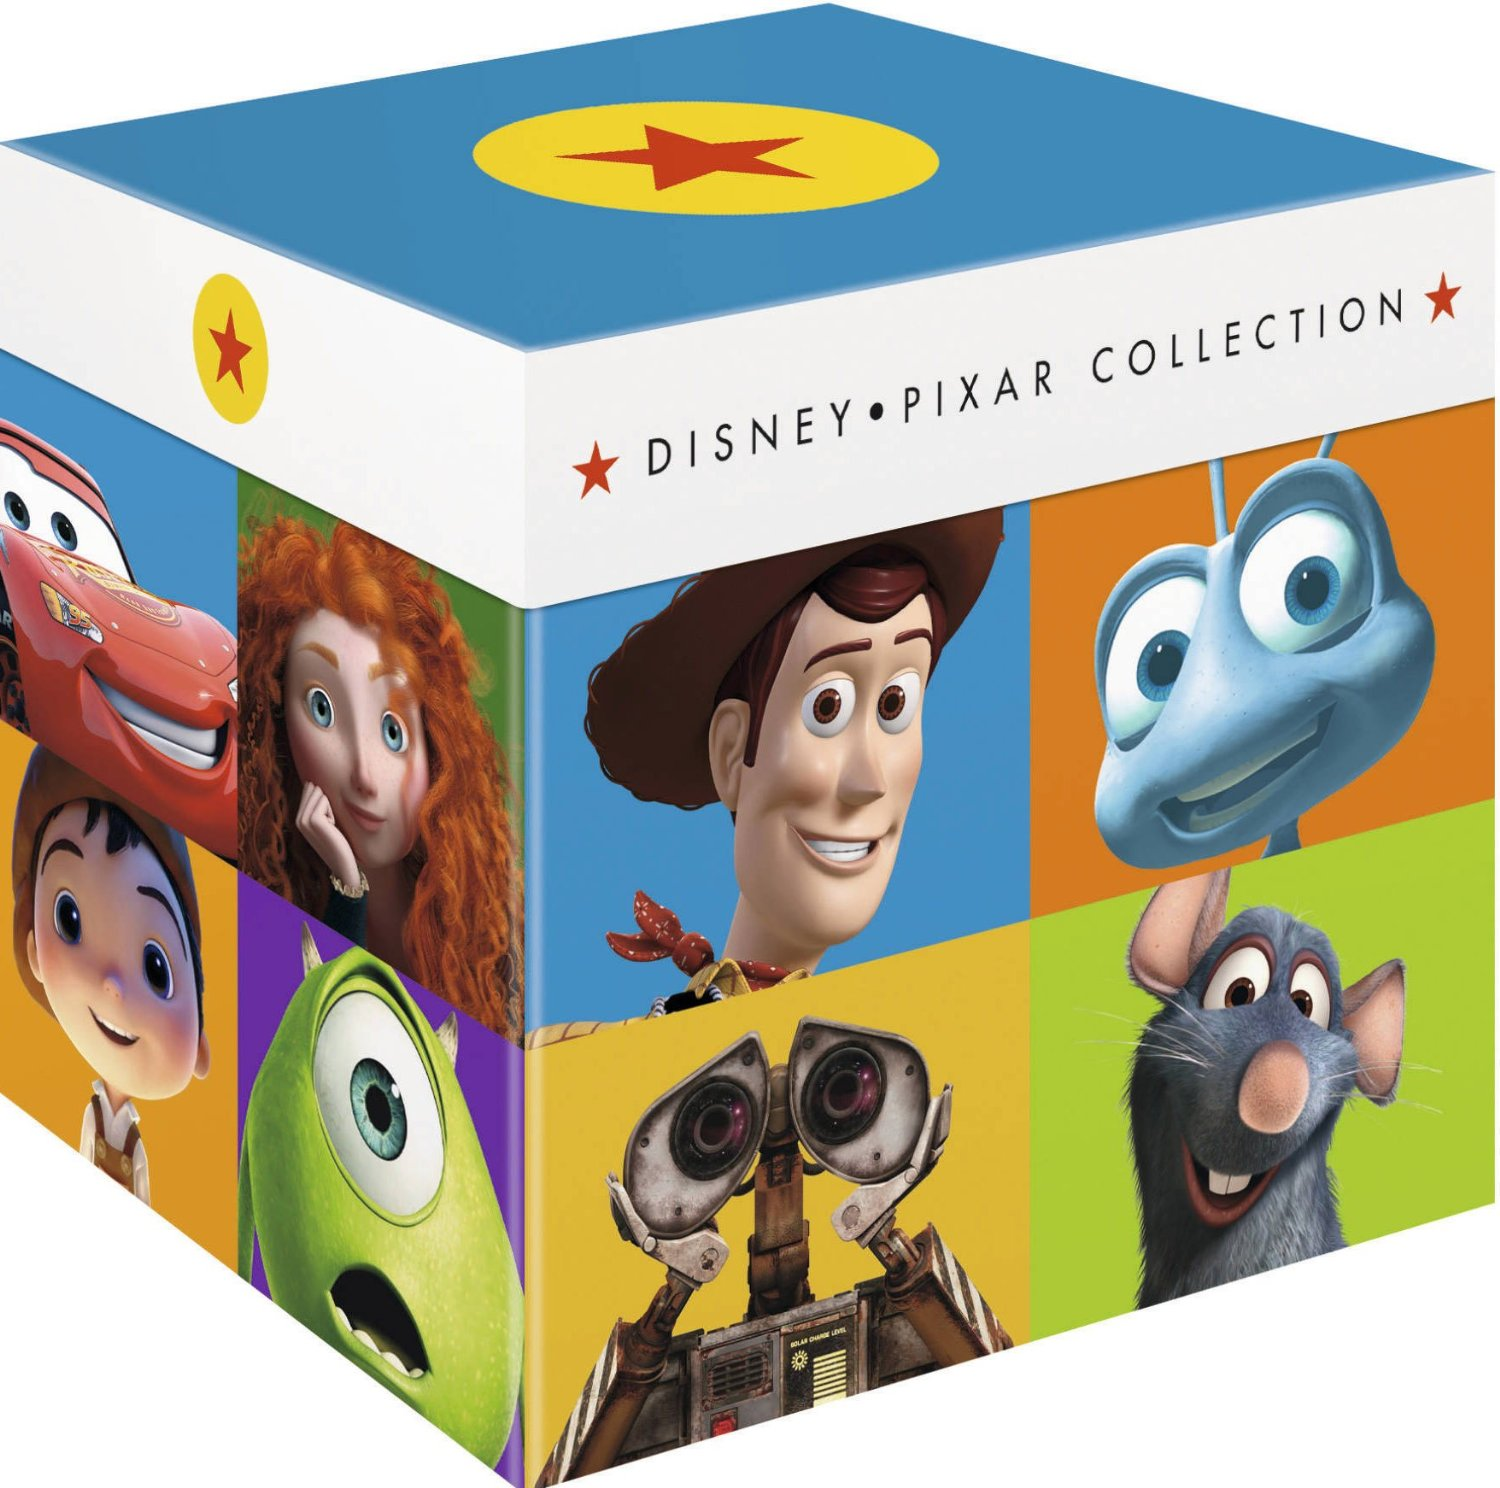 Disney Pixar Complete Collection - Exterior 1